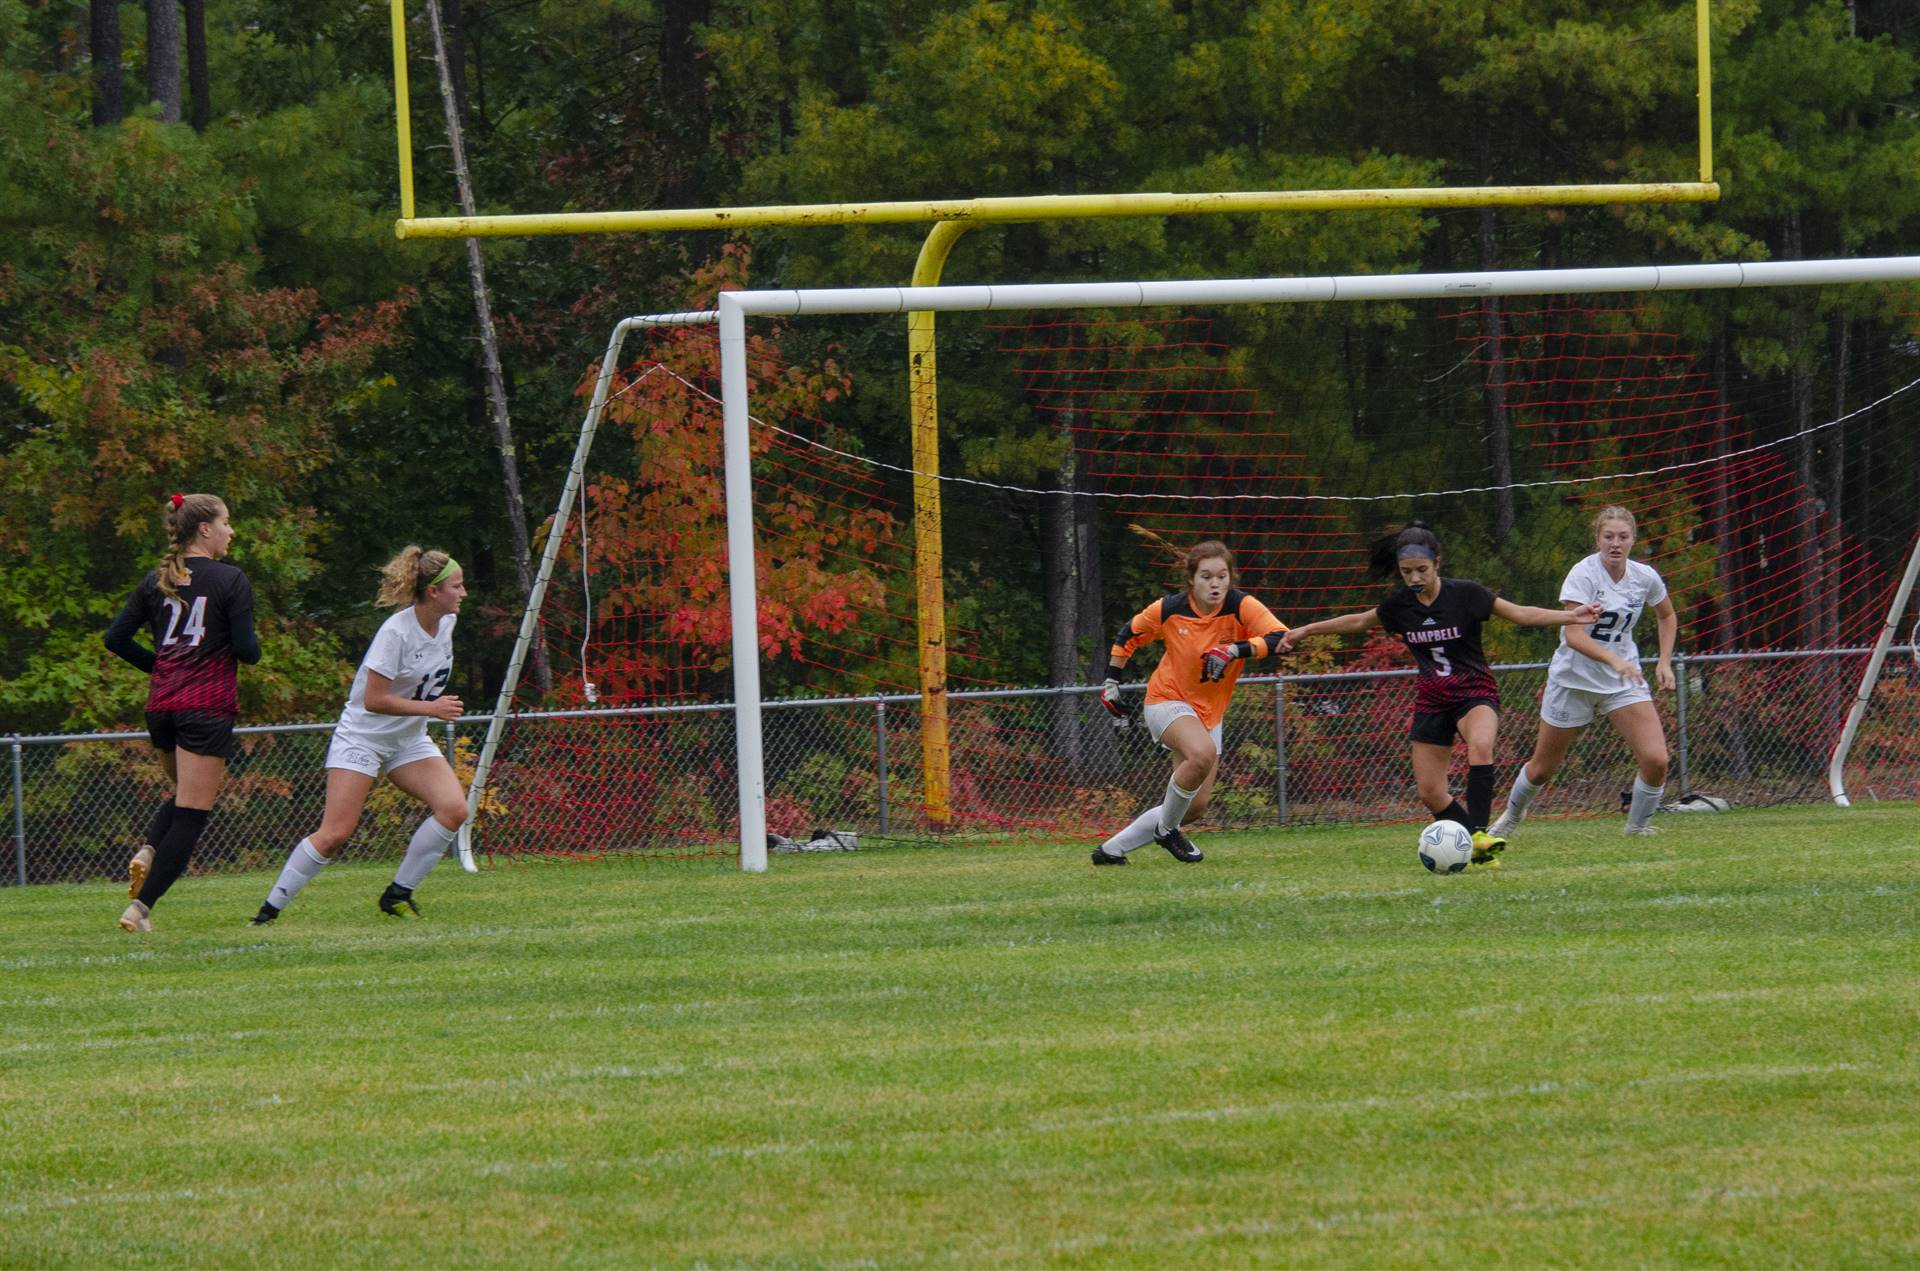 Gabby getting ready to score